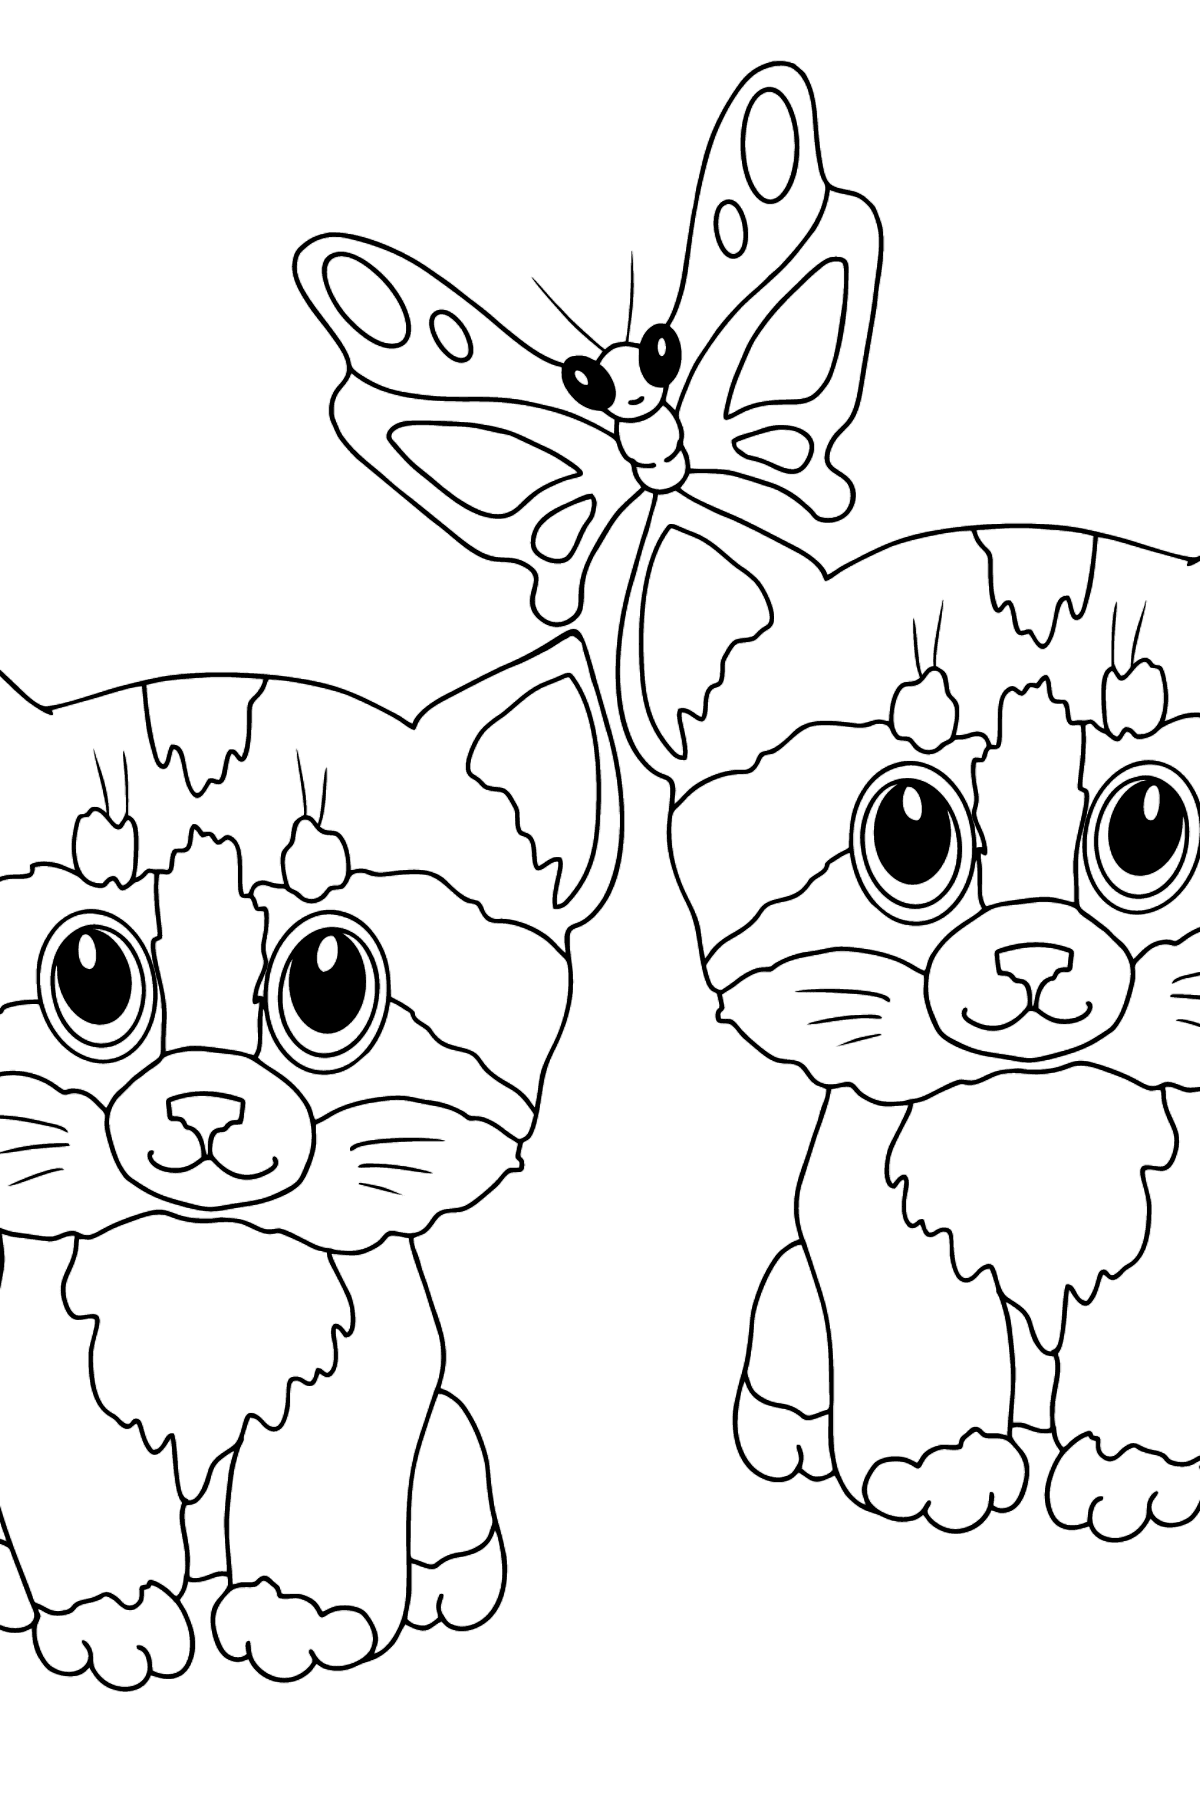 Coloring Page - Kittens are Playing Happily with a Butterfly  - Coloring Pages for Kids